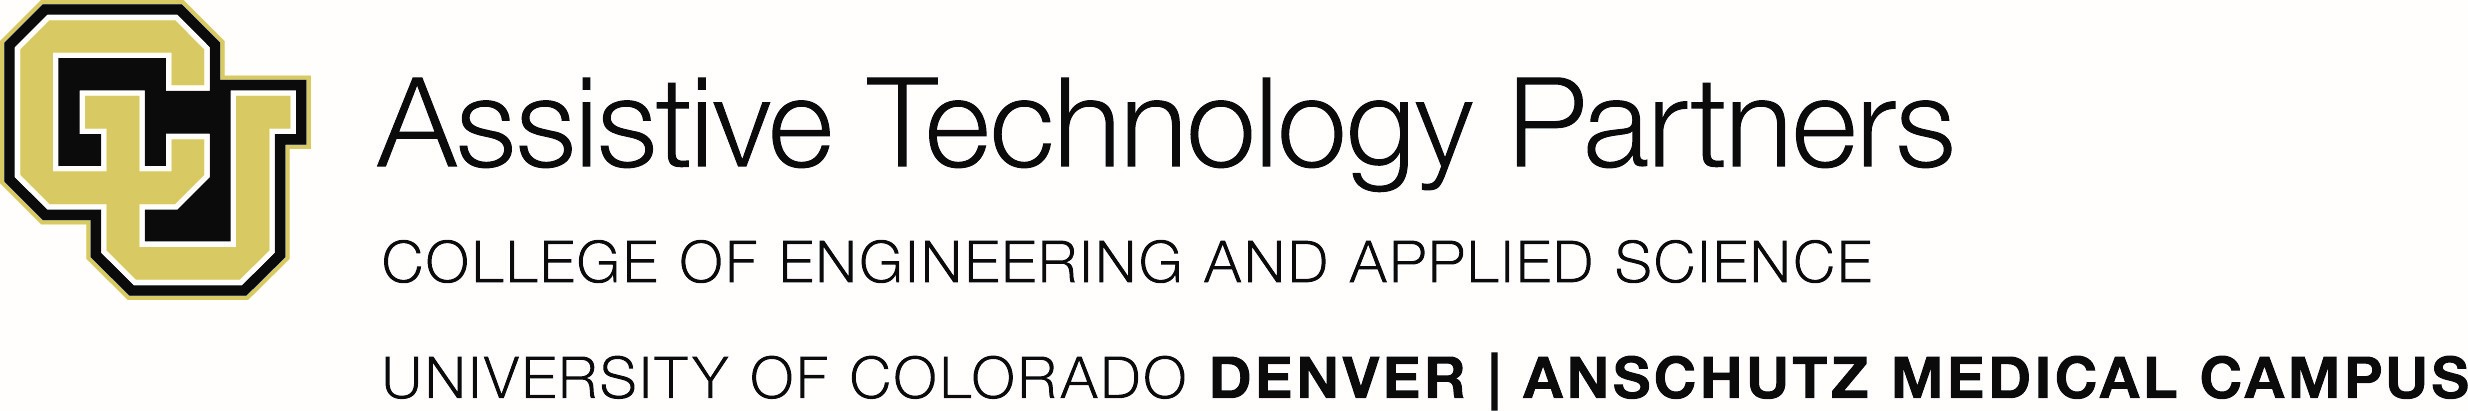 Assistive Technology Partners Order Form